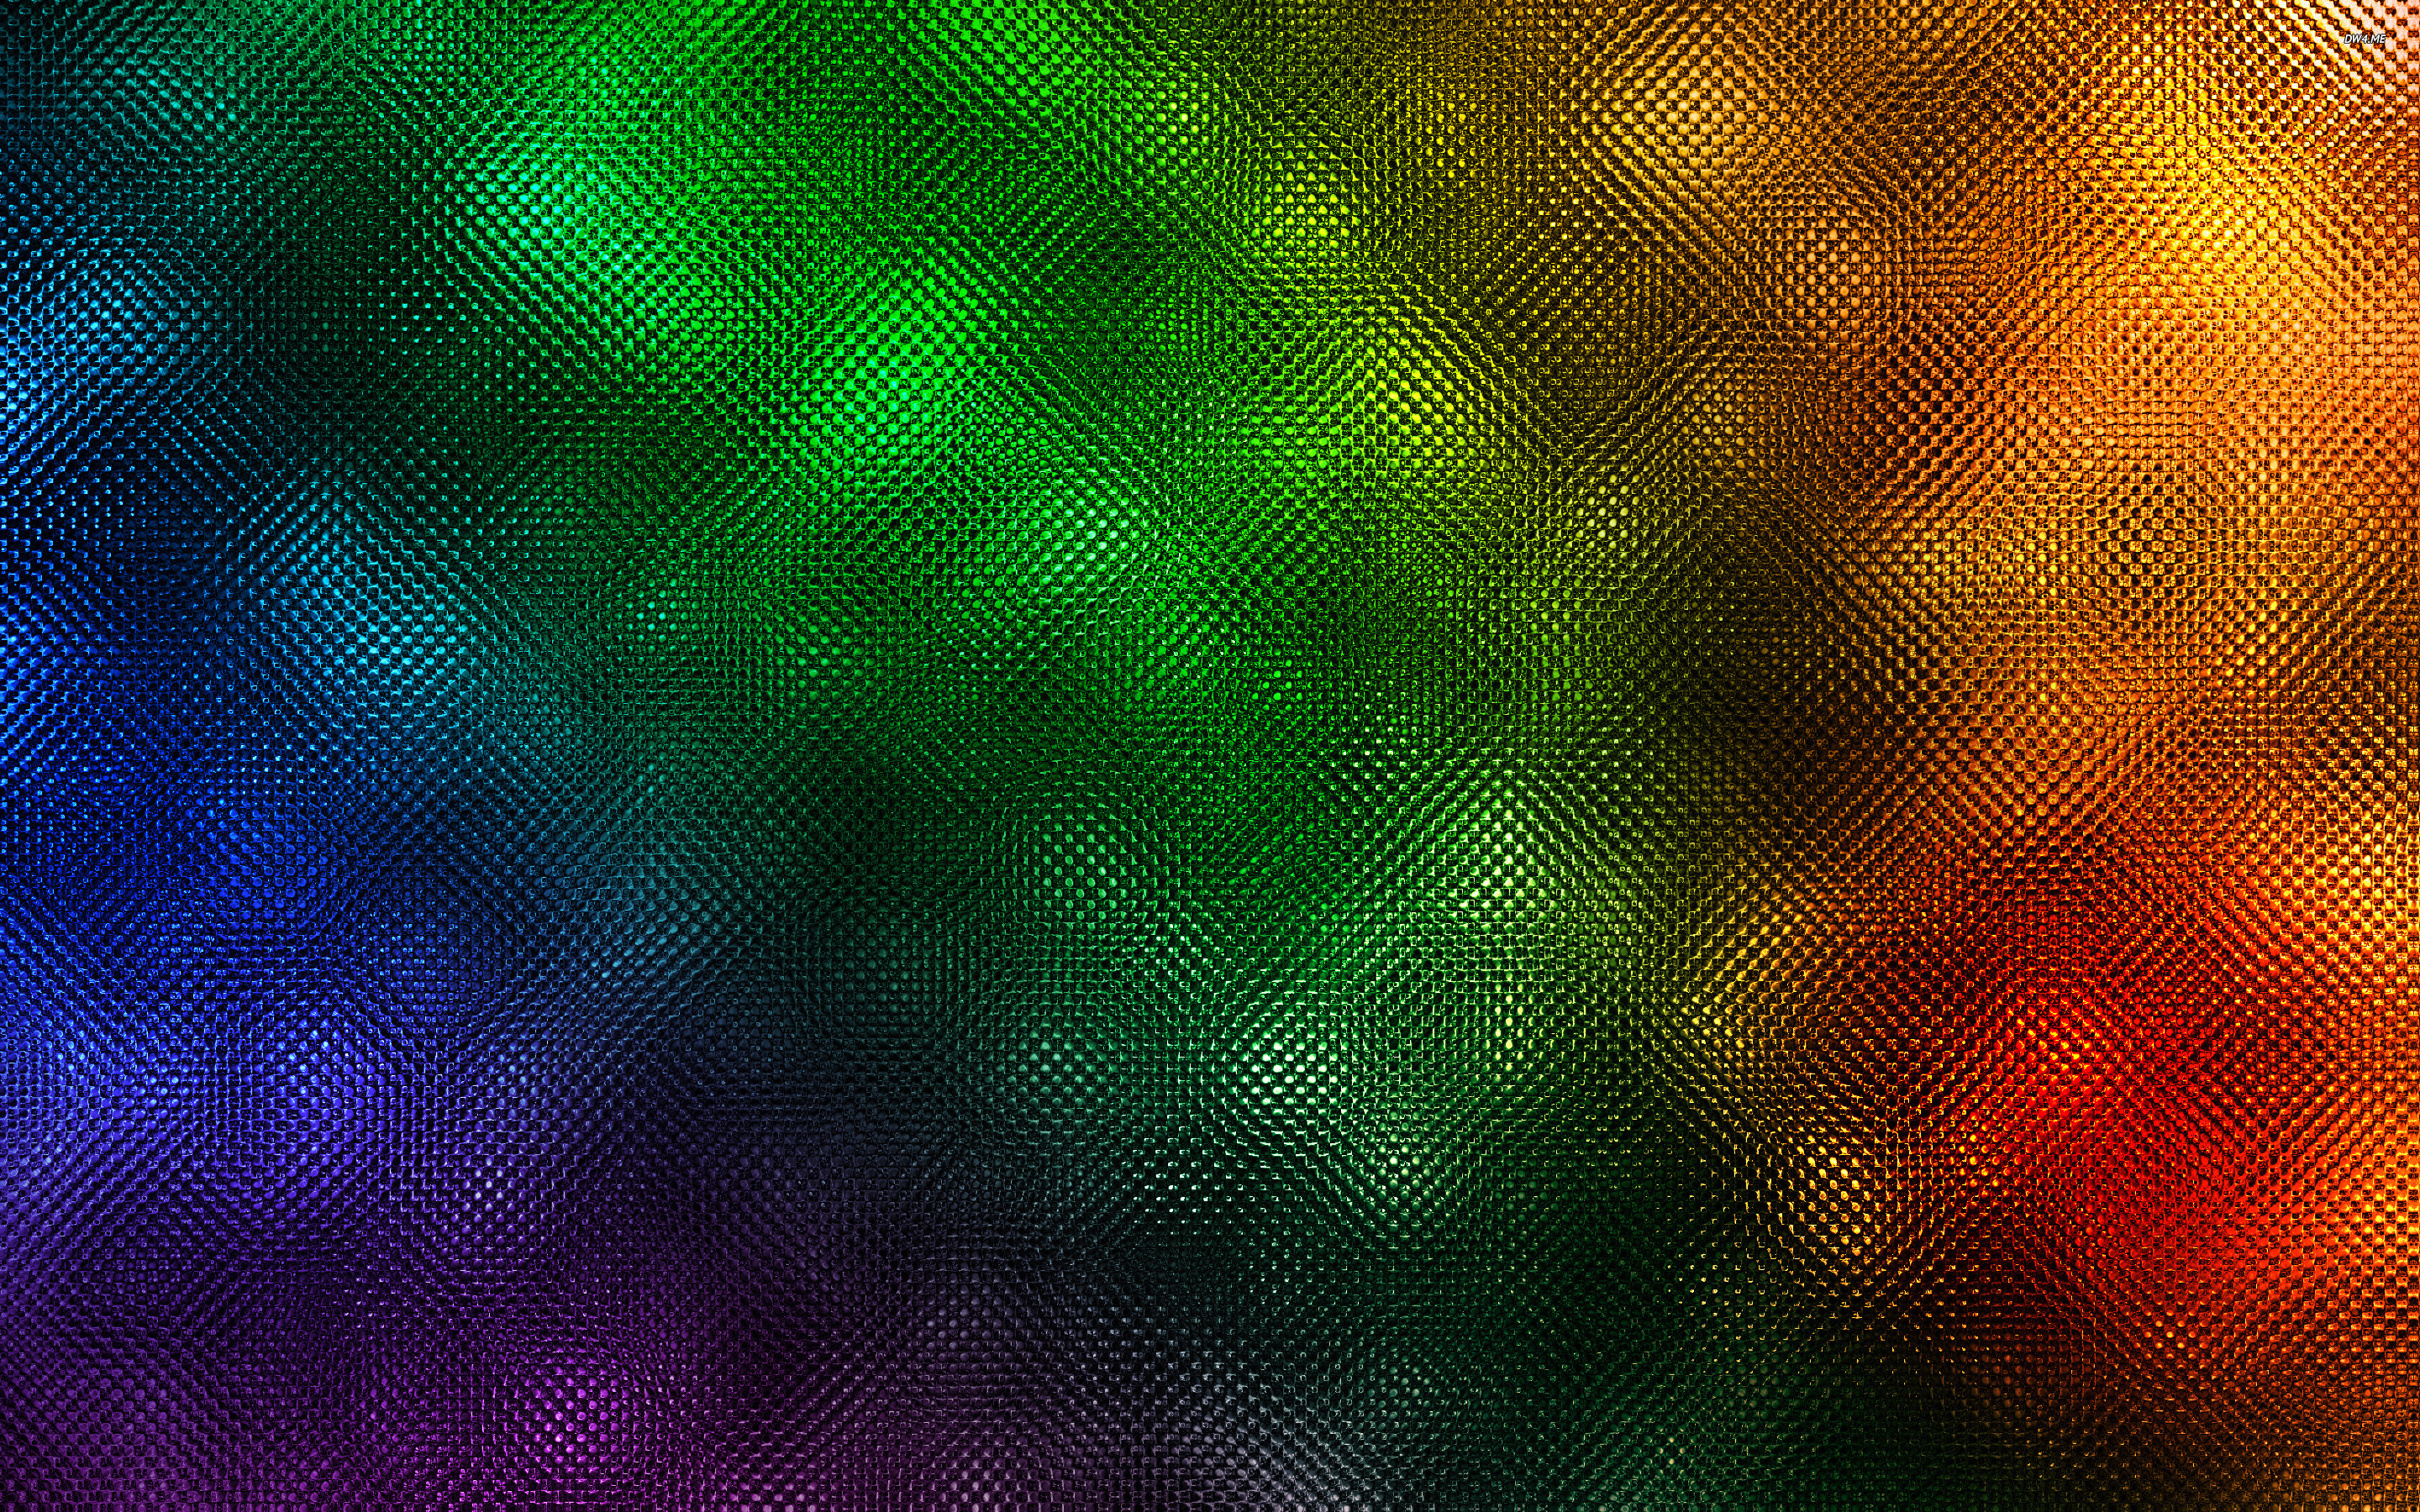 Colorful carbon fiber pattern wallpaper   Abstract wallpapers   1918 2880x1800